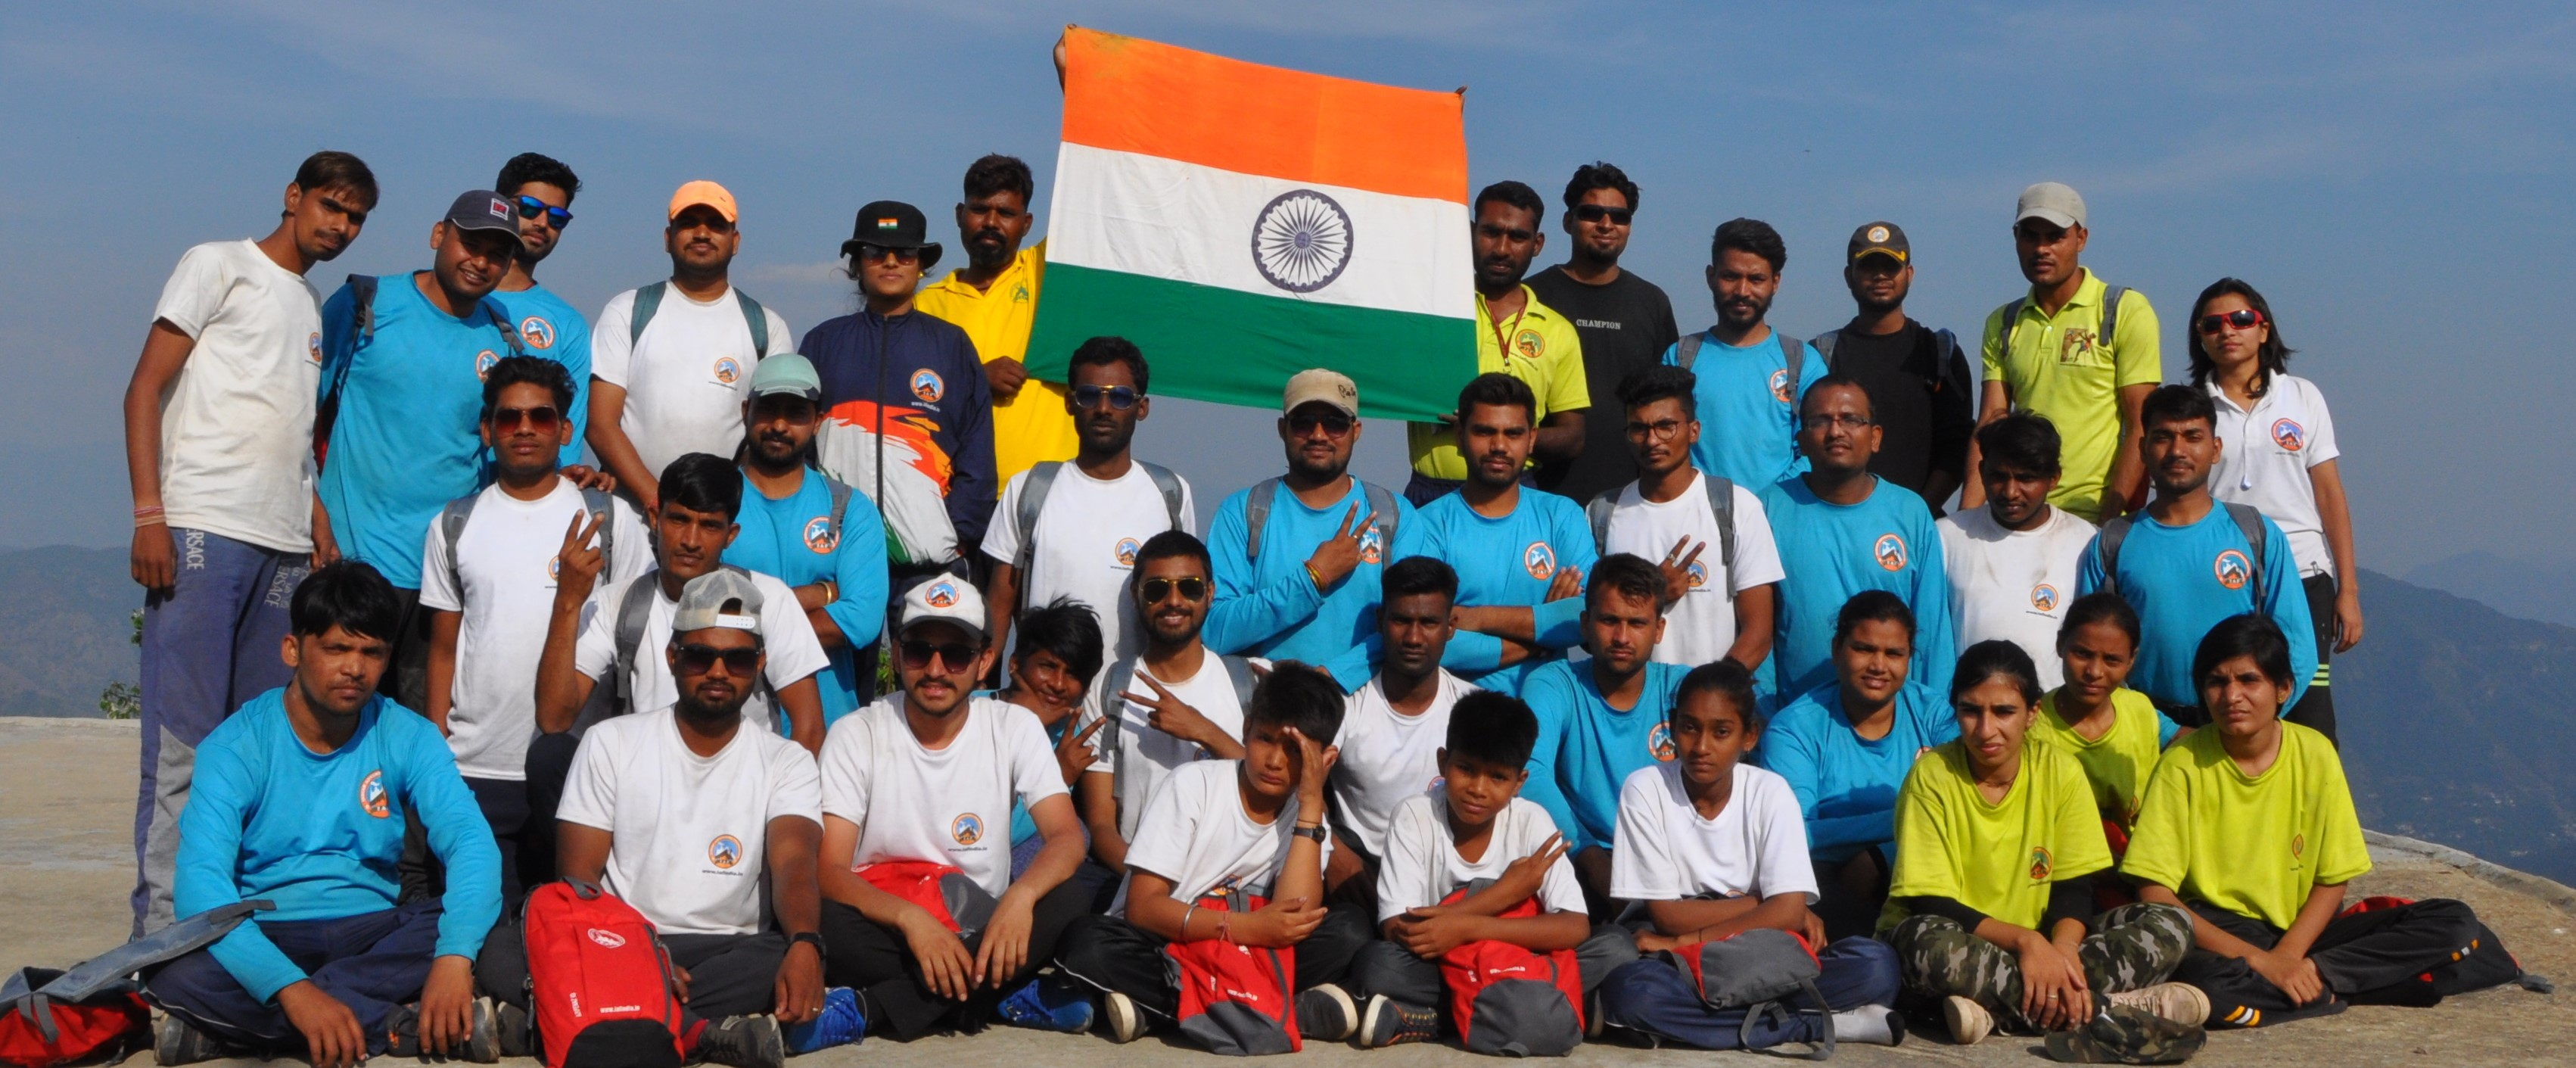 IAF - Indian Adventure Foundation